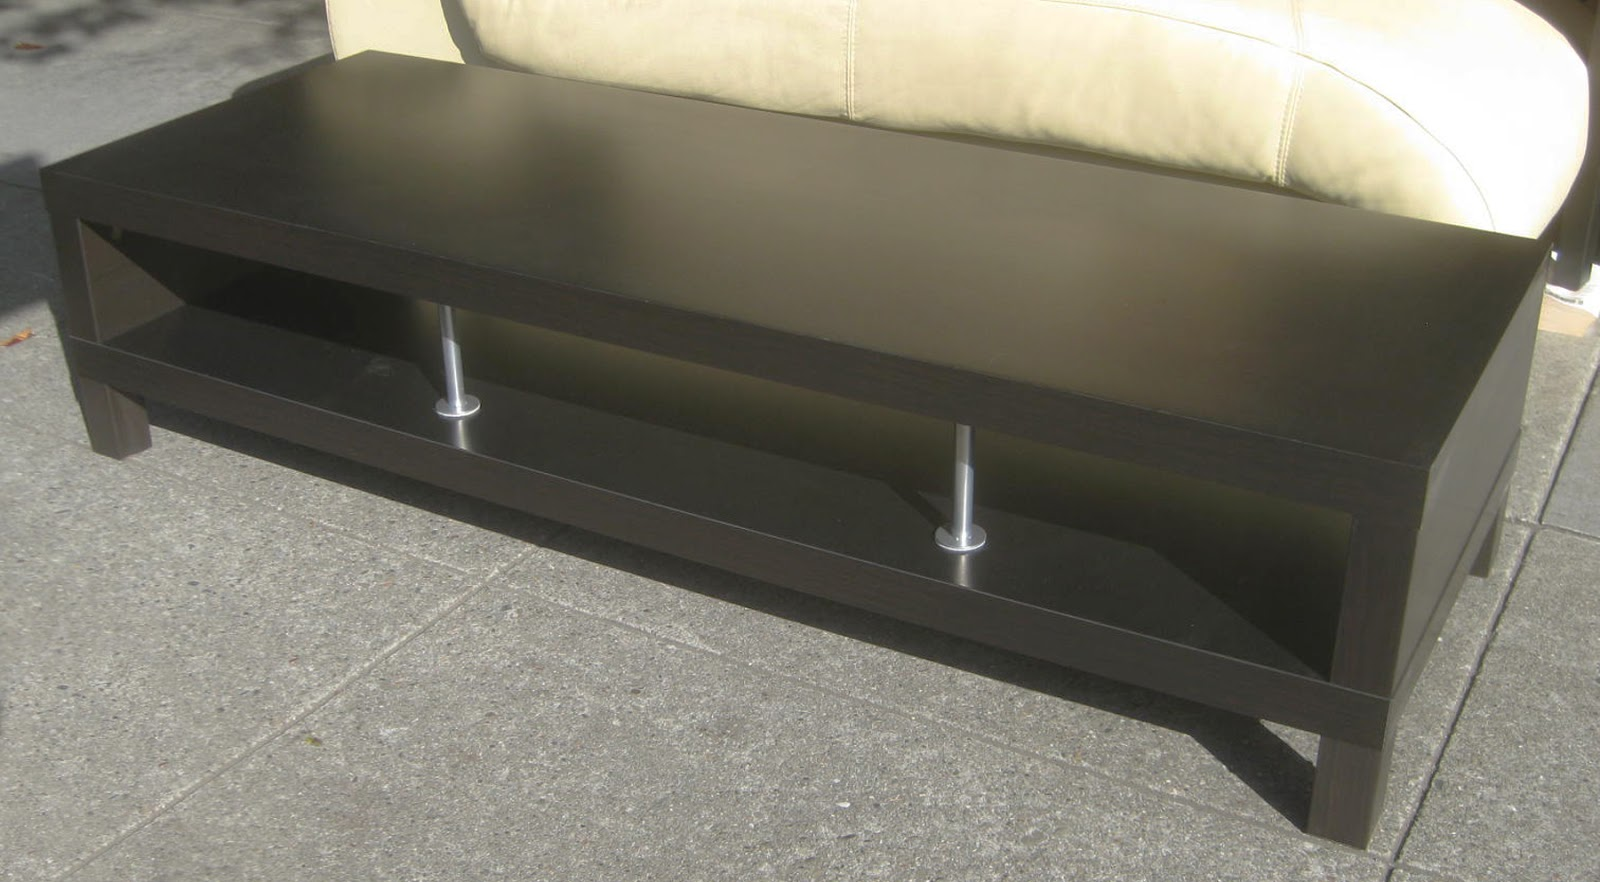 Uhuru furniture collectibles sold black ikea coffee table sold black ikea coffee table geotapseo Image collections